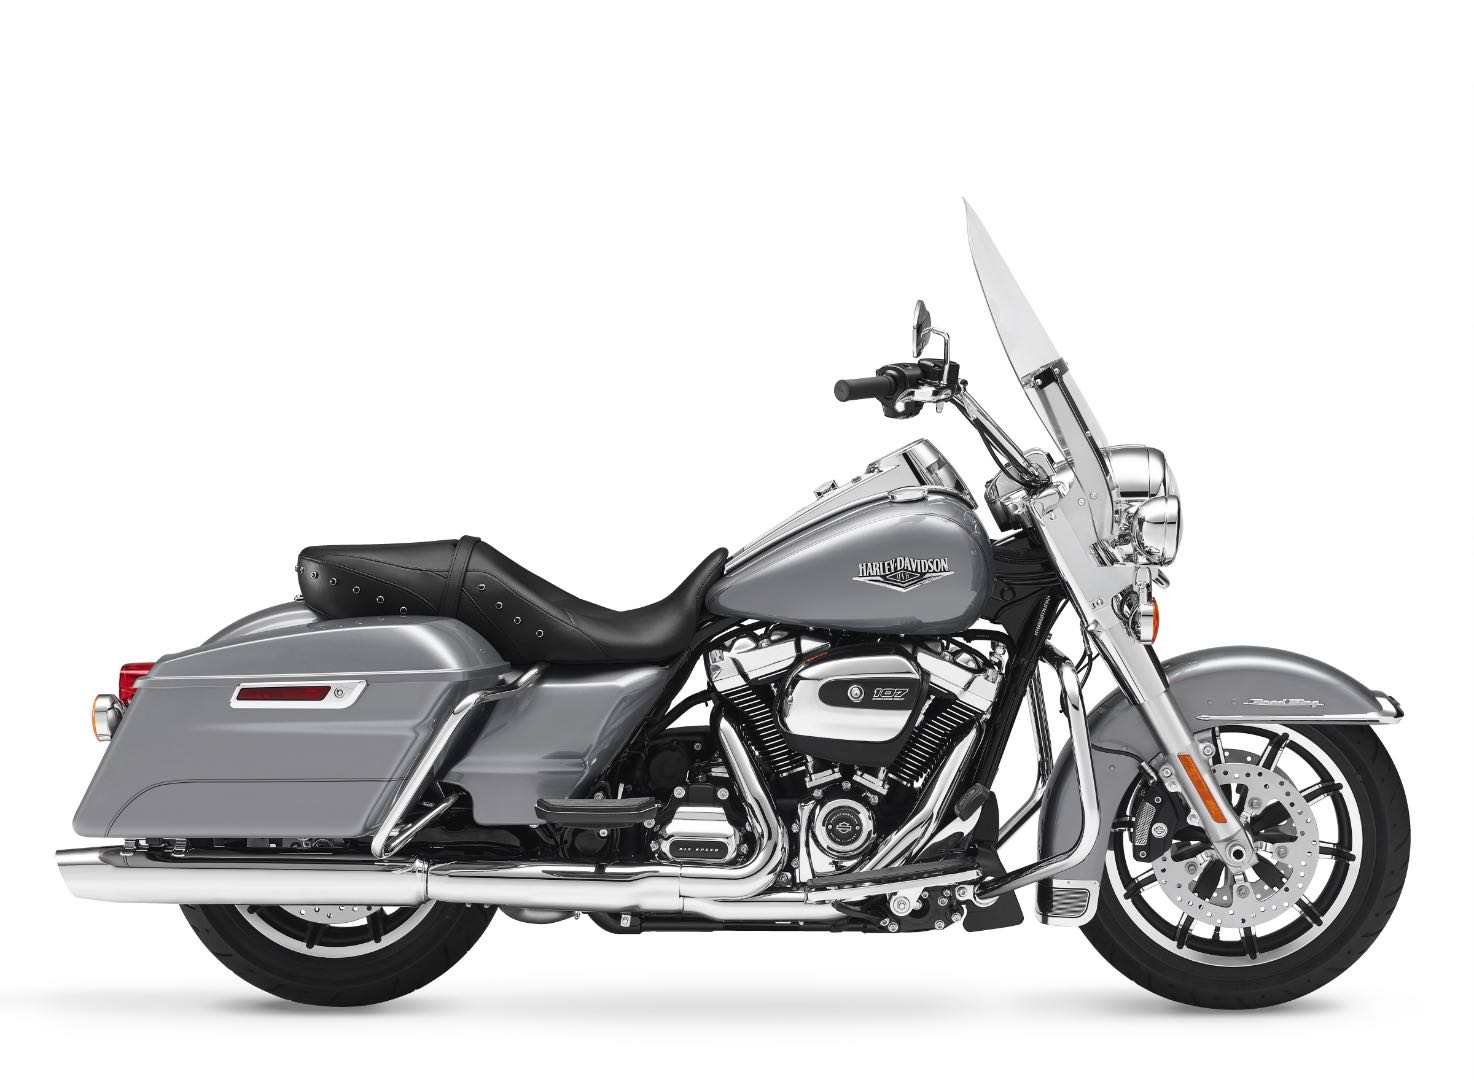 2017 Harley Davidson Road King Buyer S Guide Specs Price